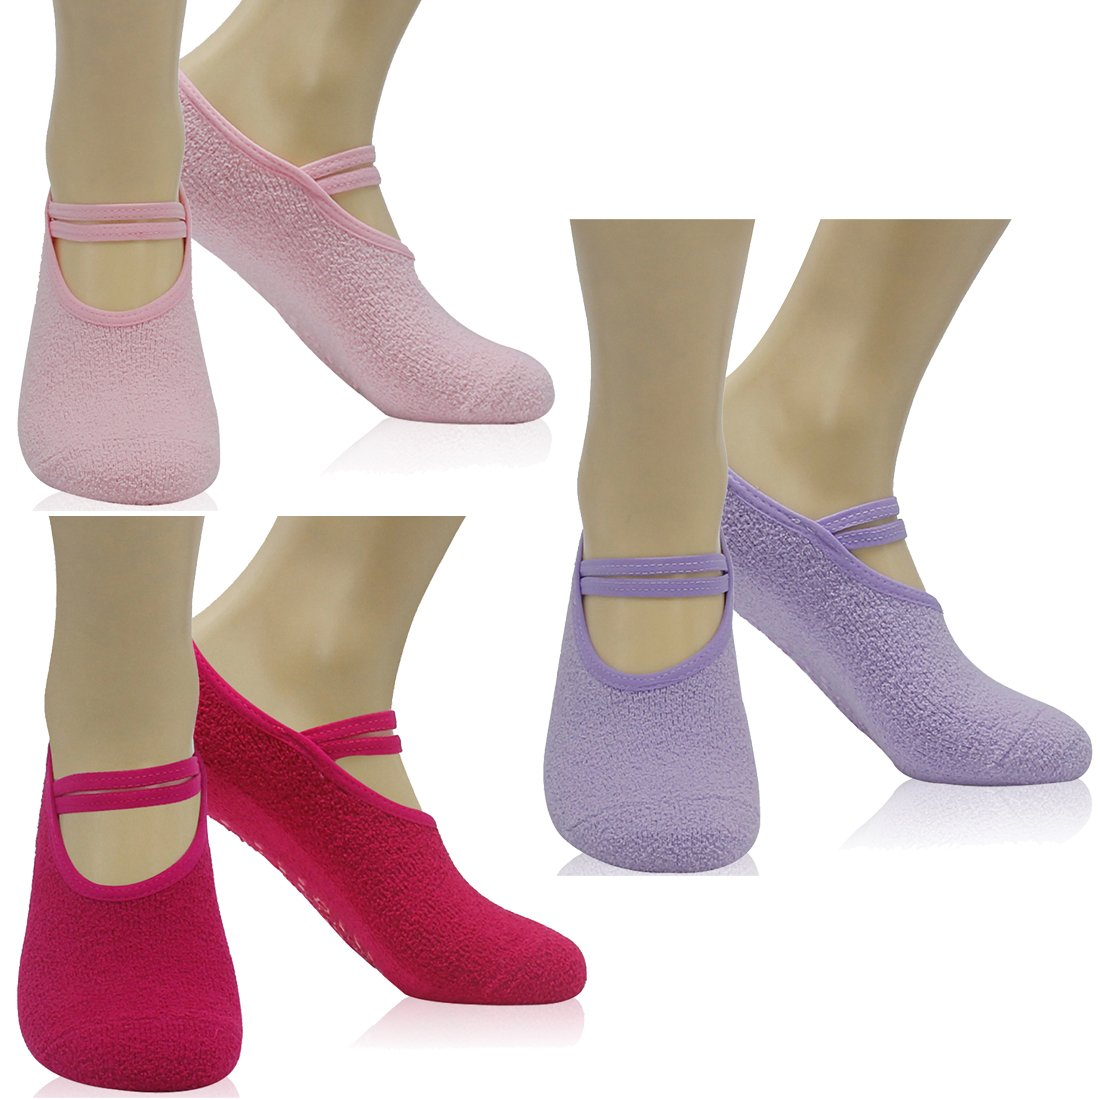 Women's Ballet Style No Show Low Cut Hospital Slipper Socks Great for Barre Pilates Yoga with Non Skid Grips Forfoot Pack of 3 Light Purple/Pink/Rose Red